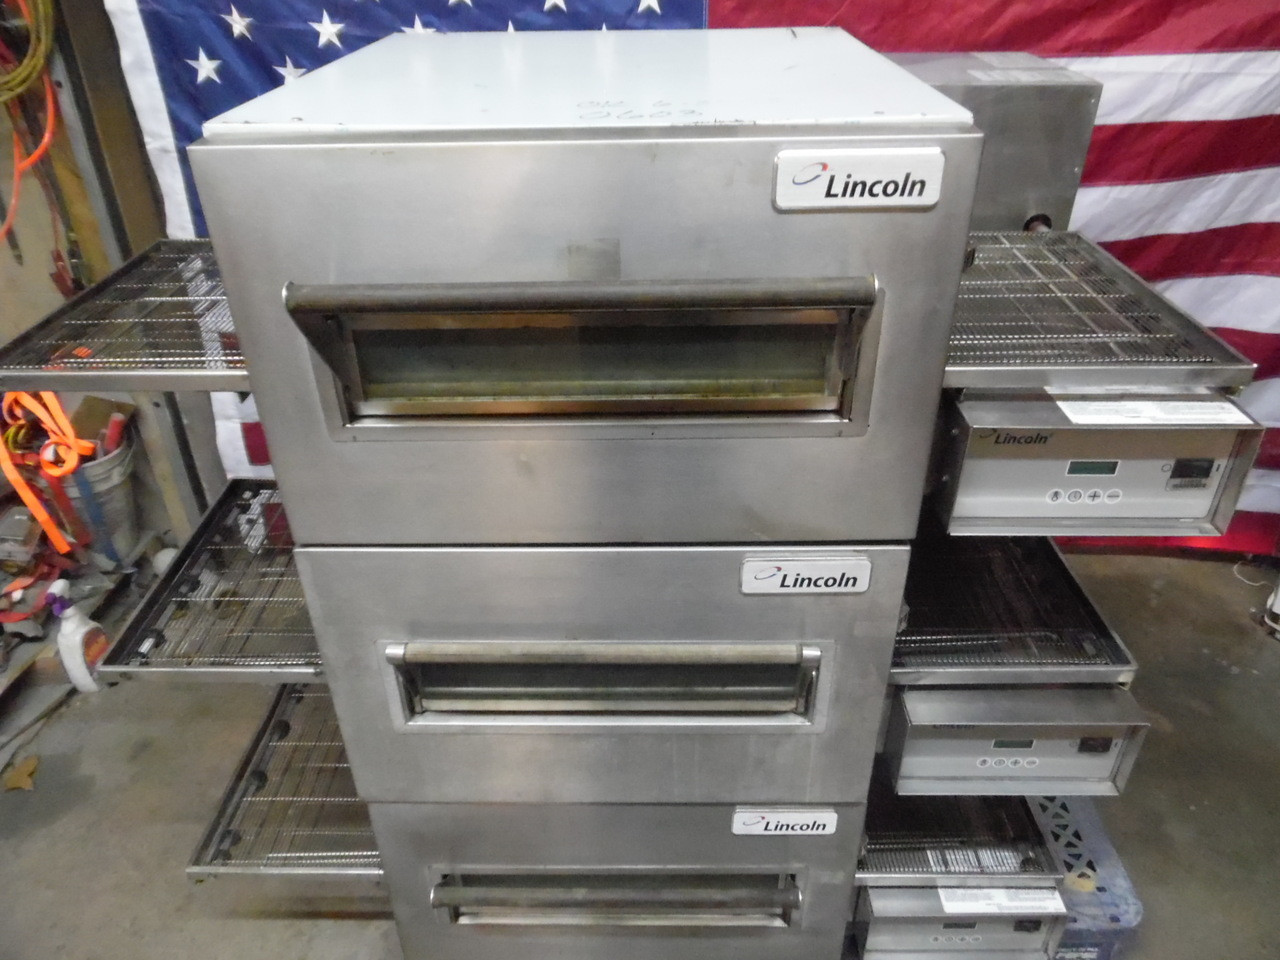 Lincoln 1132 208 3 Phase Electric Triple Deck Conveyor Pizza Ovens